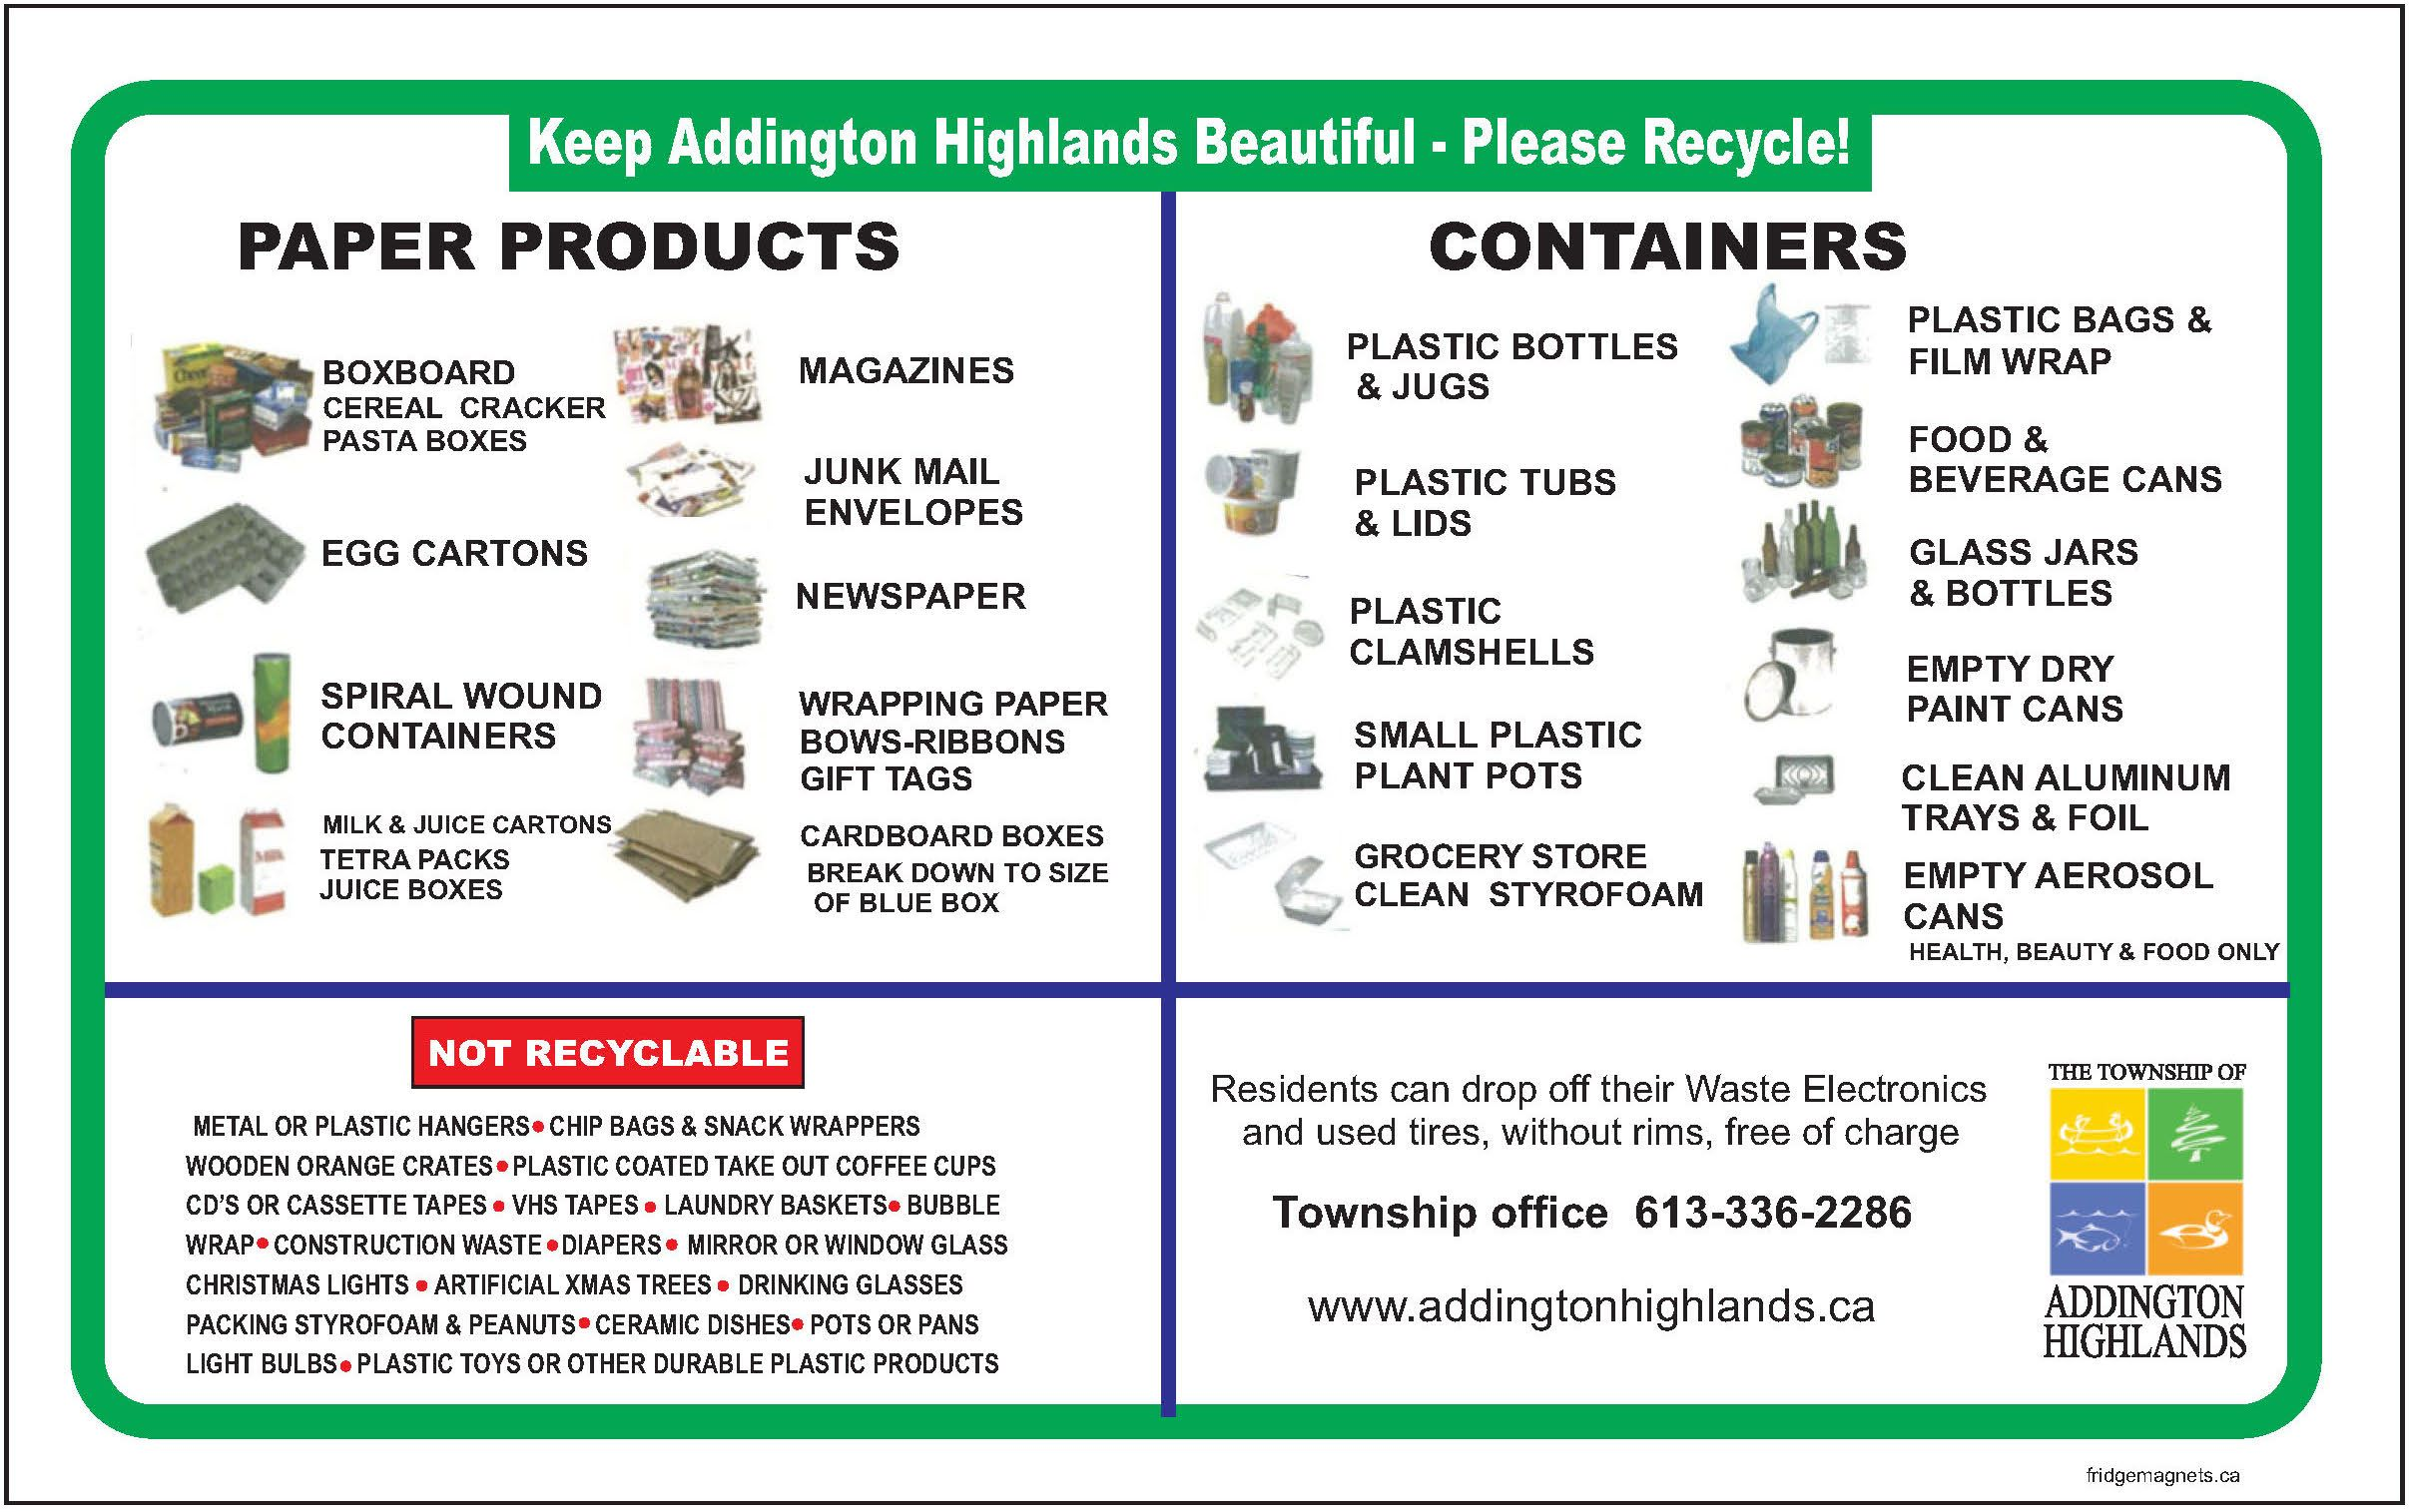 Pin 0009 Township Of Adlington Highlands Magnet For Proper Sorting Promotion Of Recycling Program Recycling Programs Glass Jars Recycling